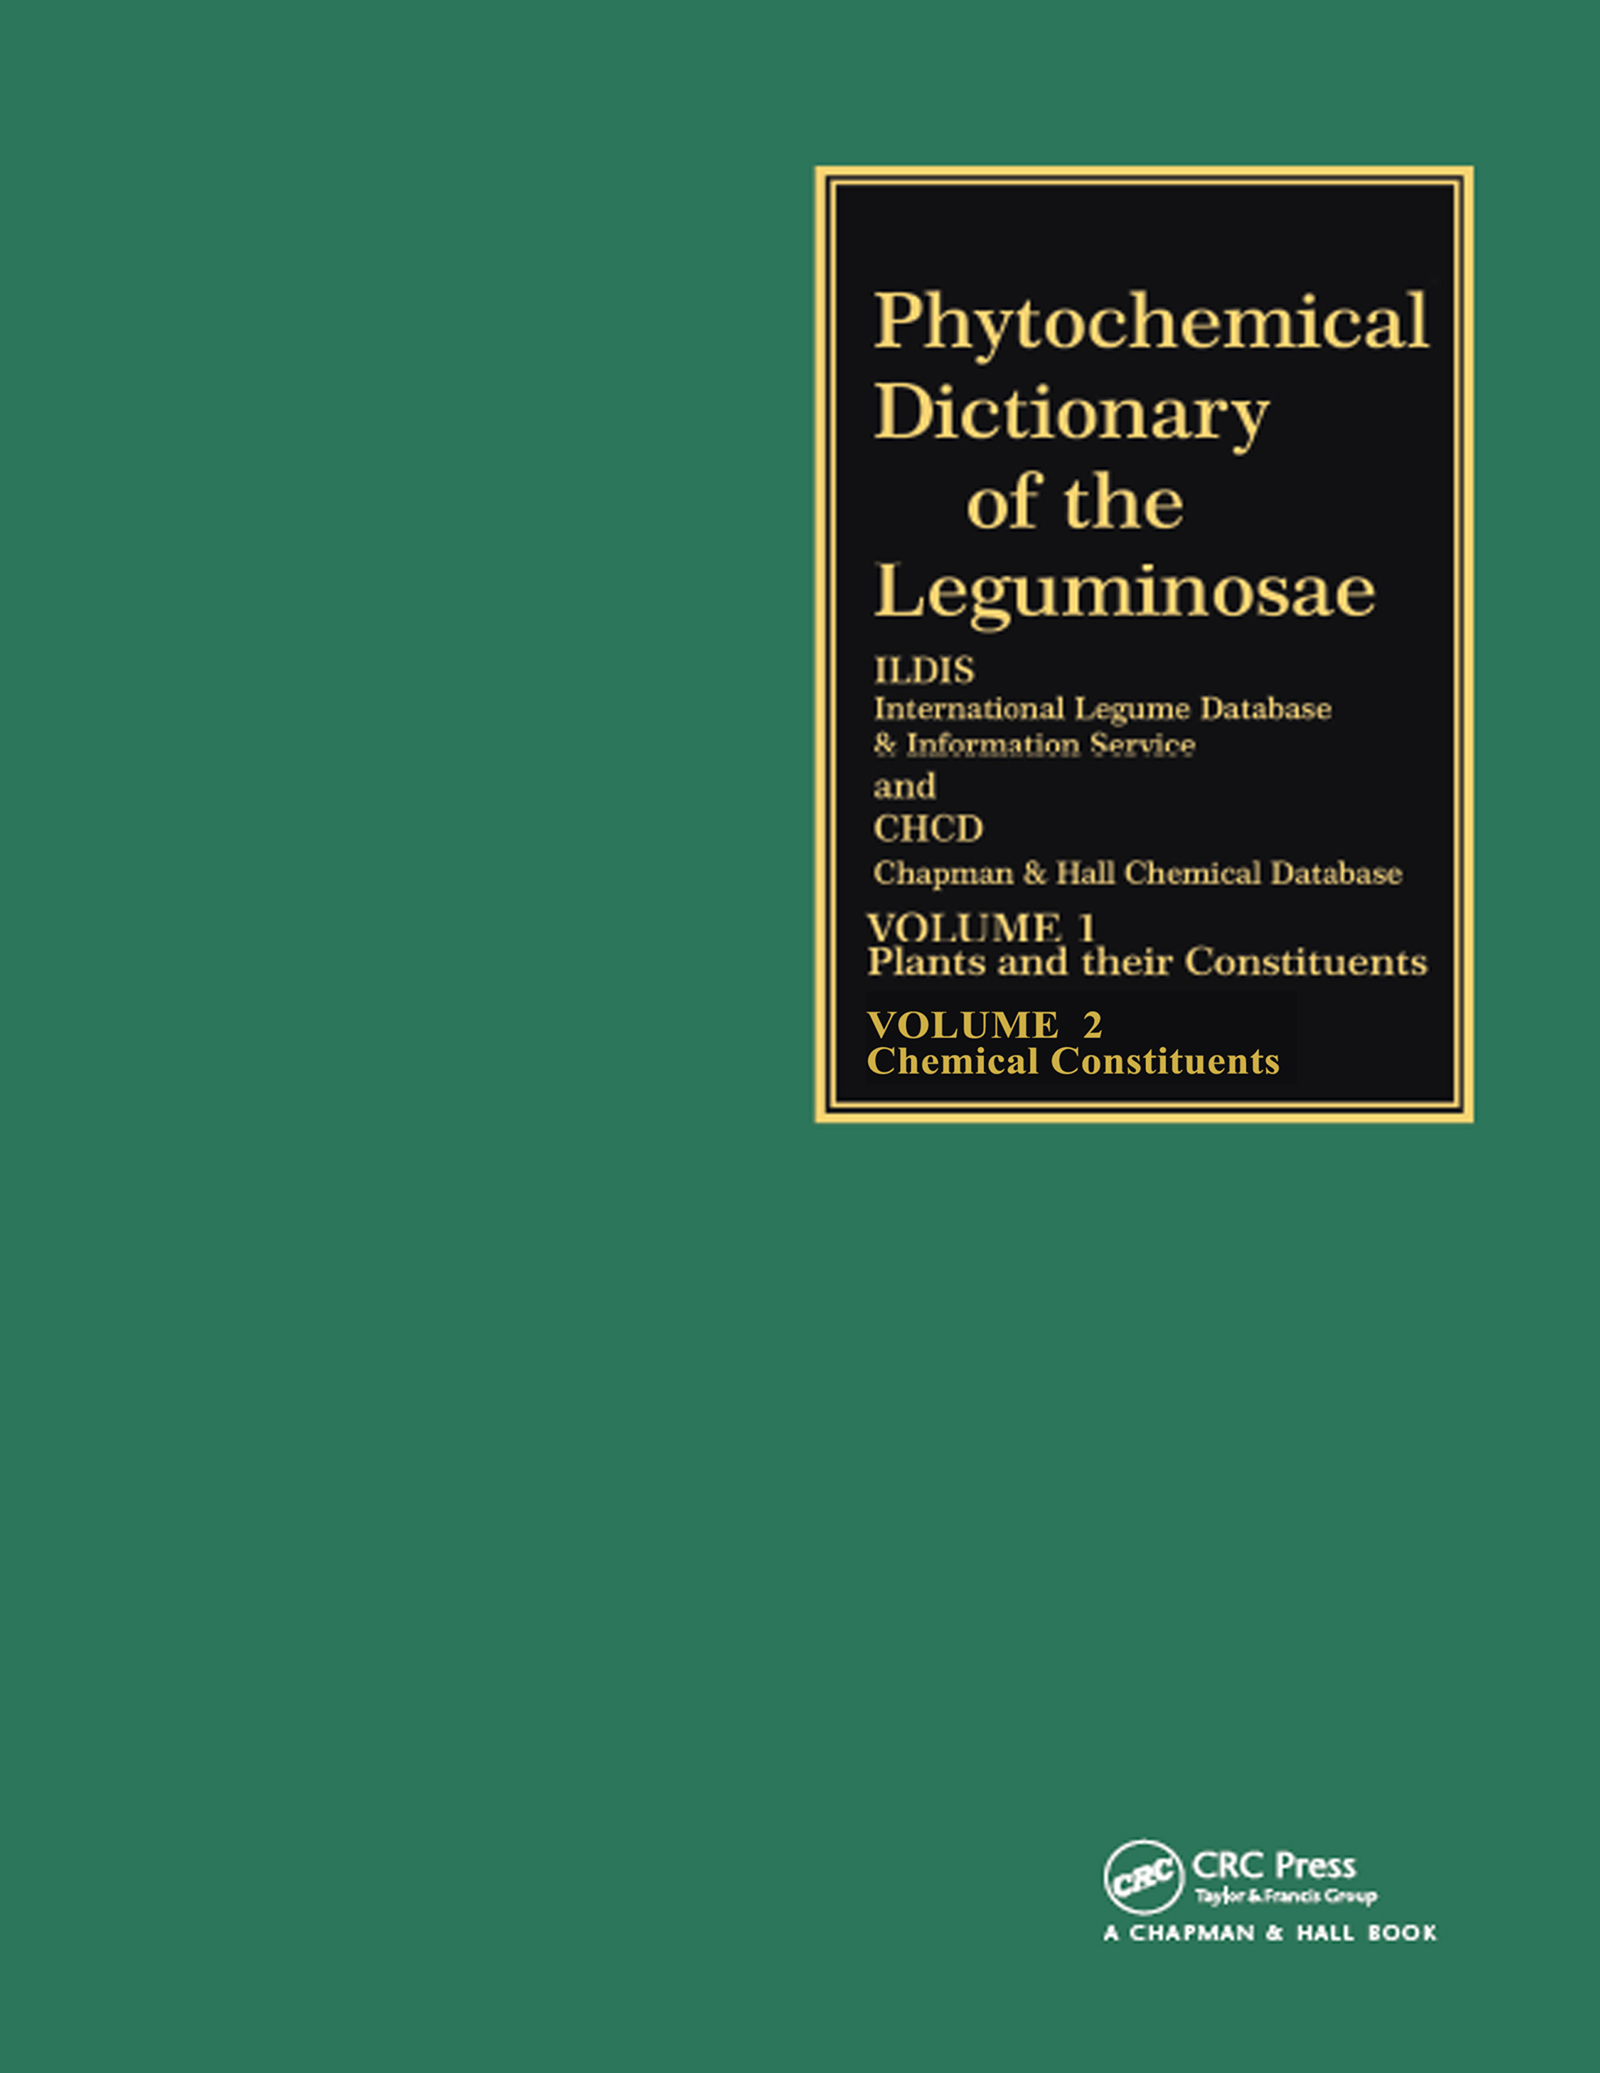 Phytochemical Dictionary of the Leguminosae